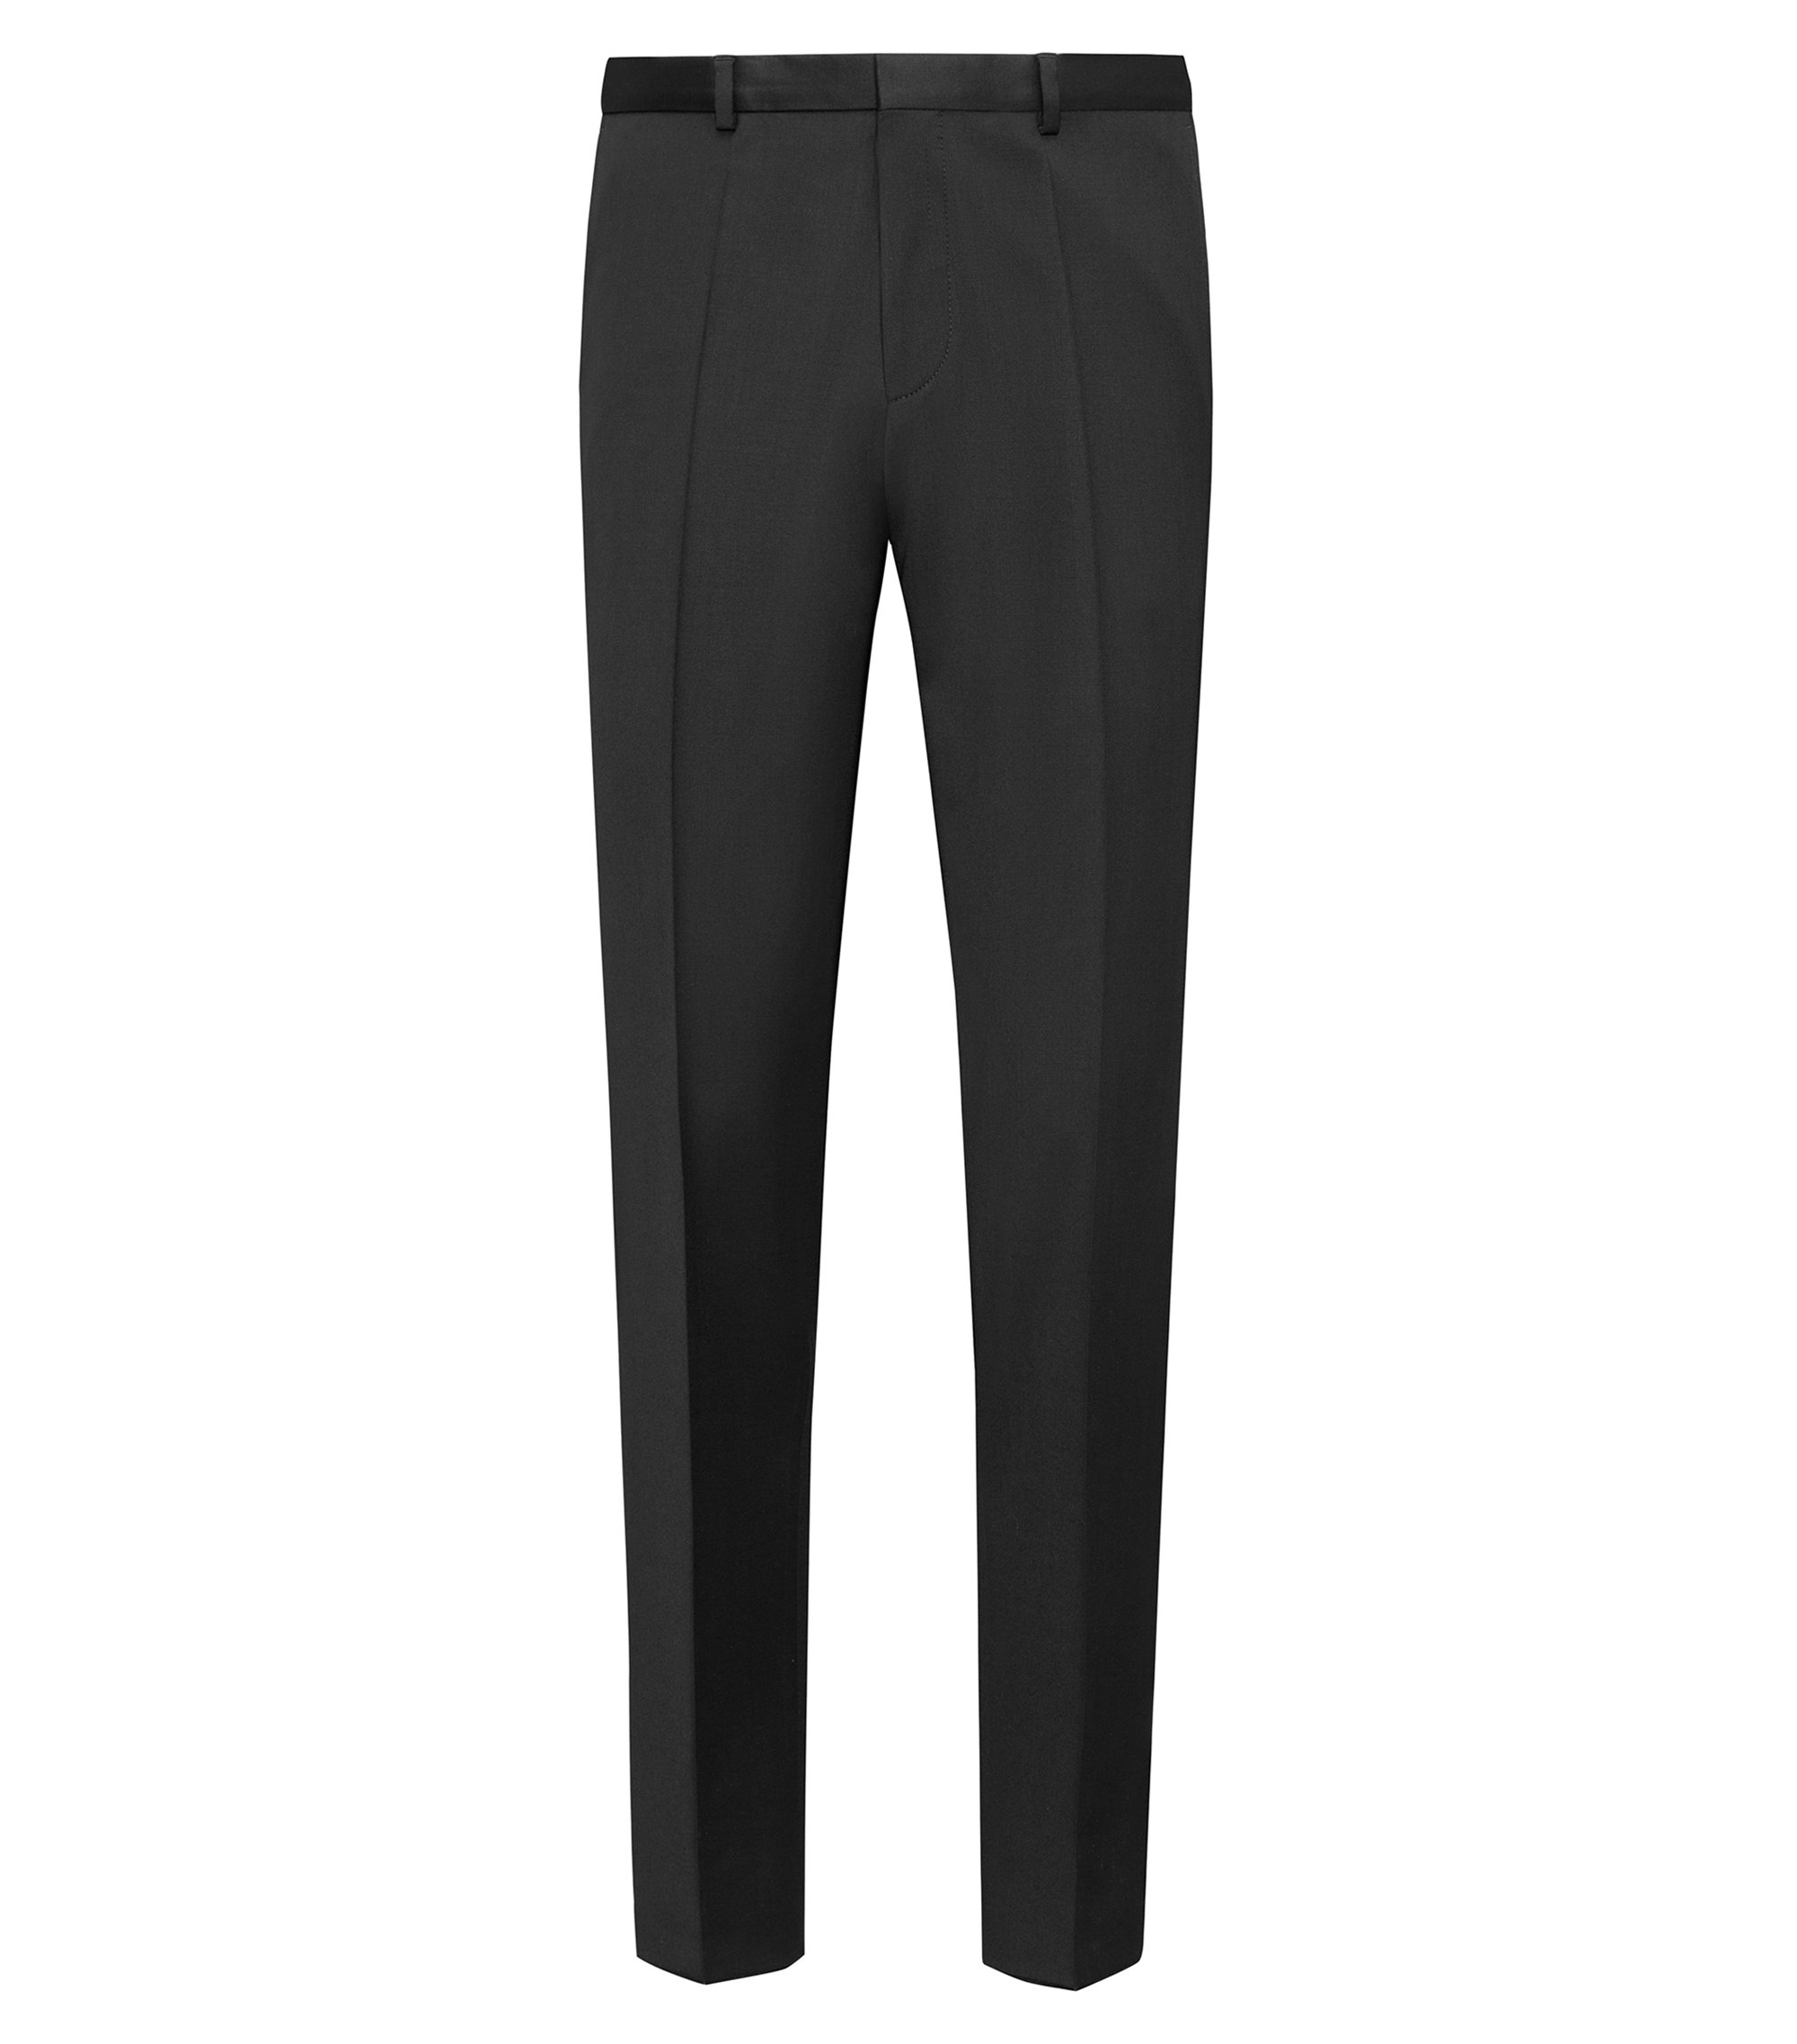 Extra-slim-fit trousers in pigment-dyed virgin wool, Black